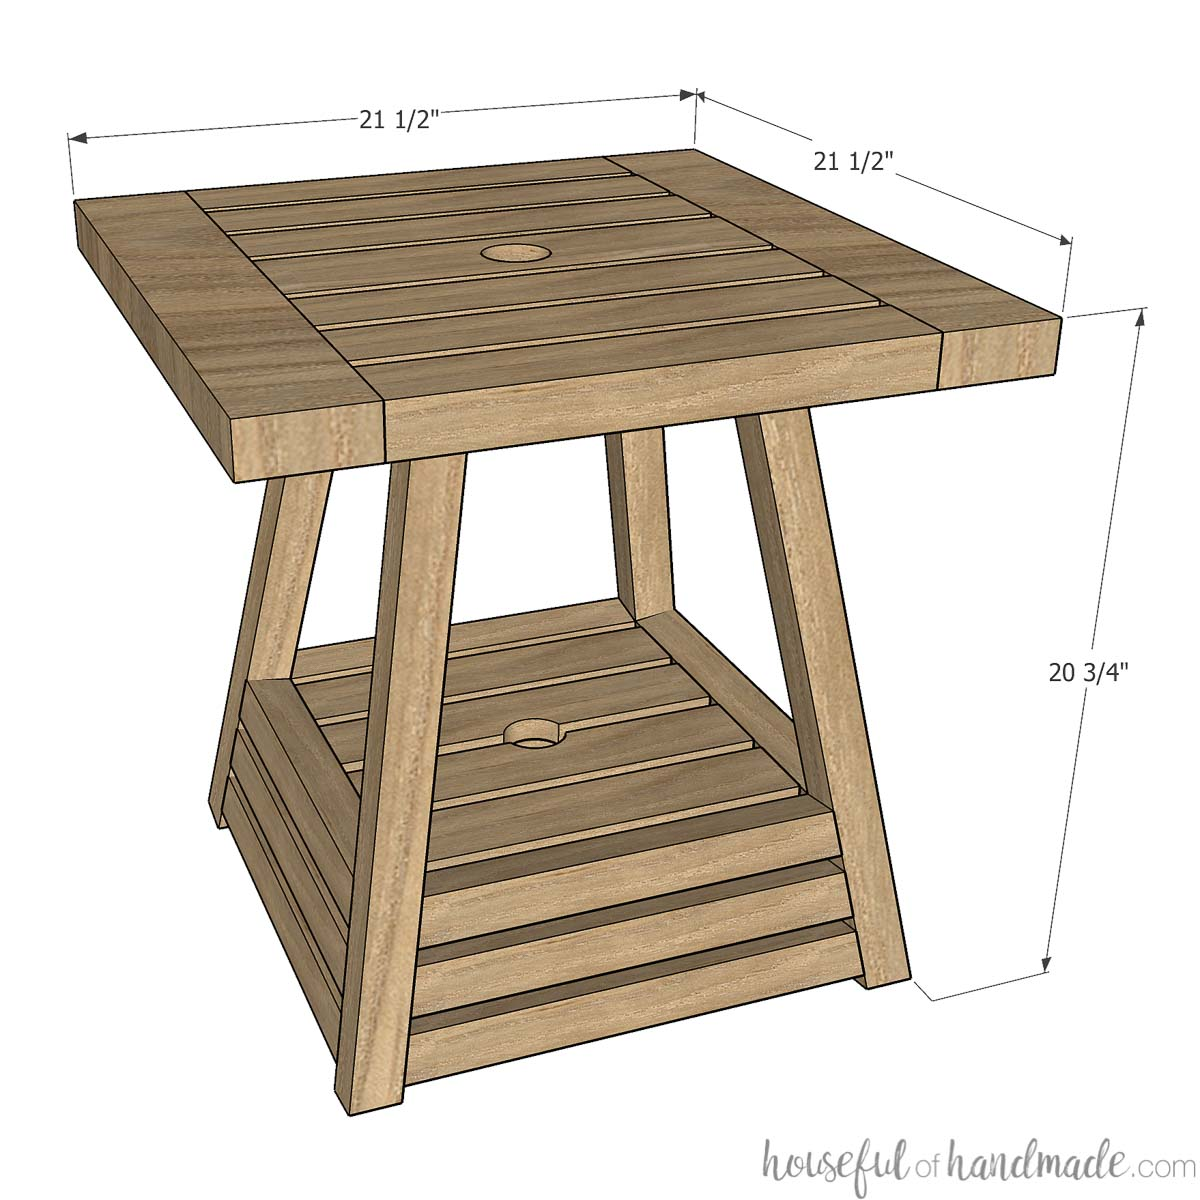 3d sketch of umbrella side table with measurements on it.